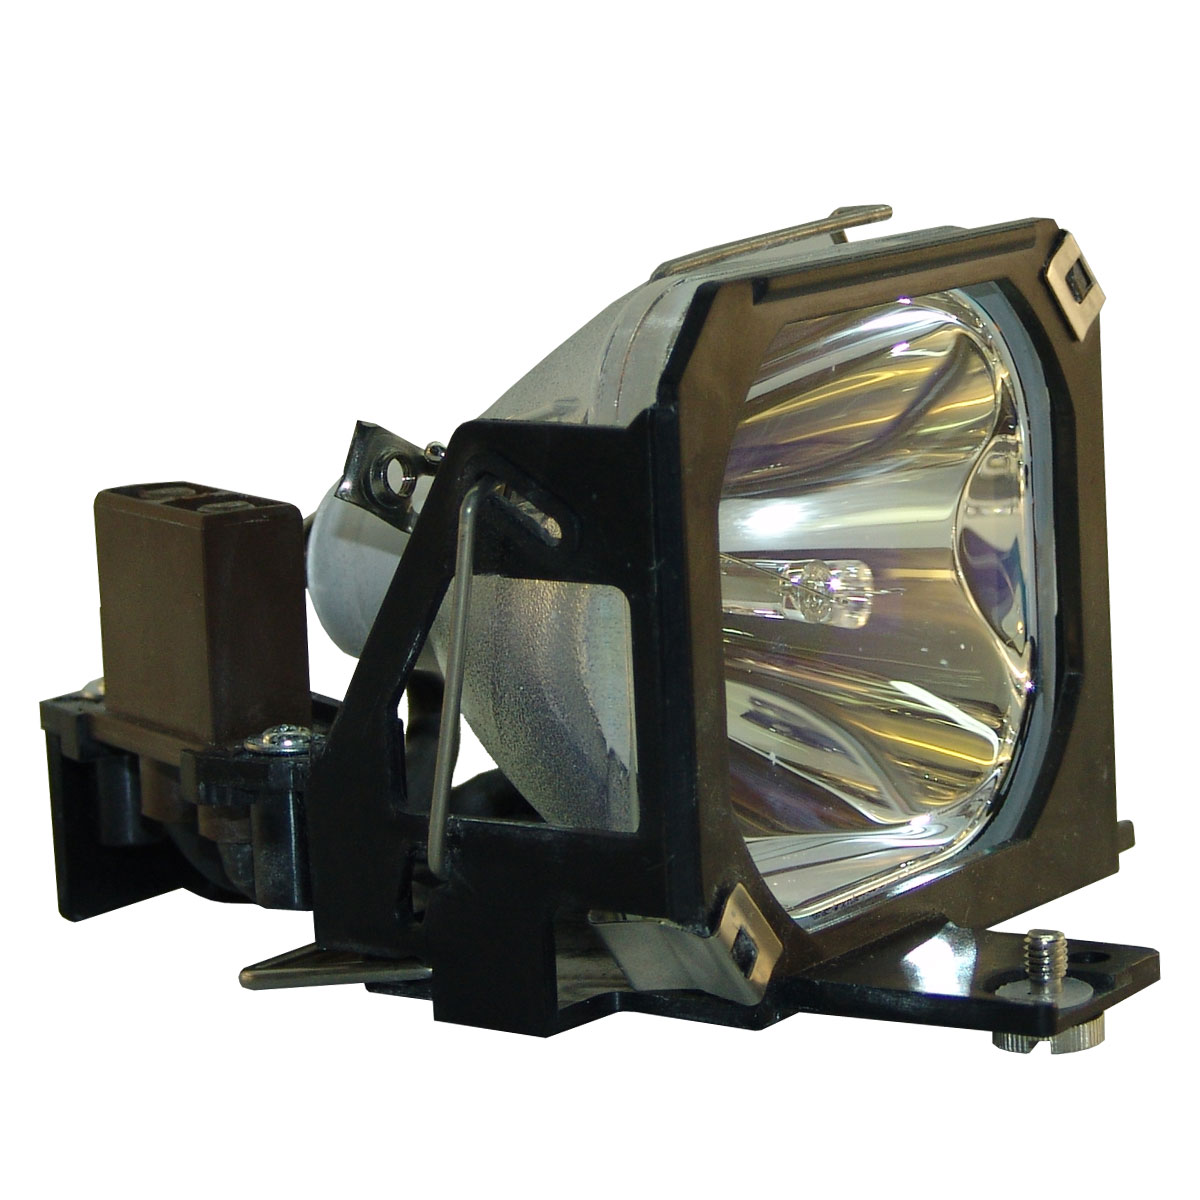 Original Philips Projector Lamp Replacement with Housing for Boxlight MP350M-930 - image 3 de 5